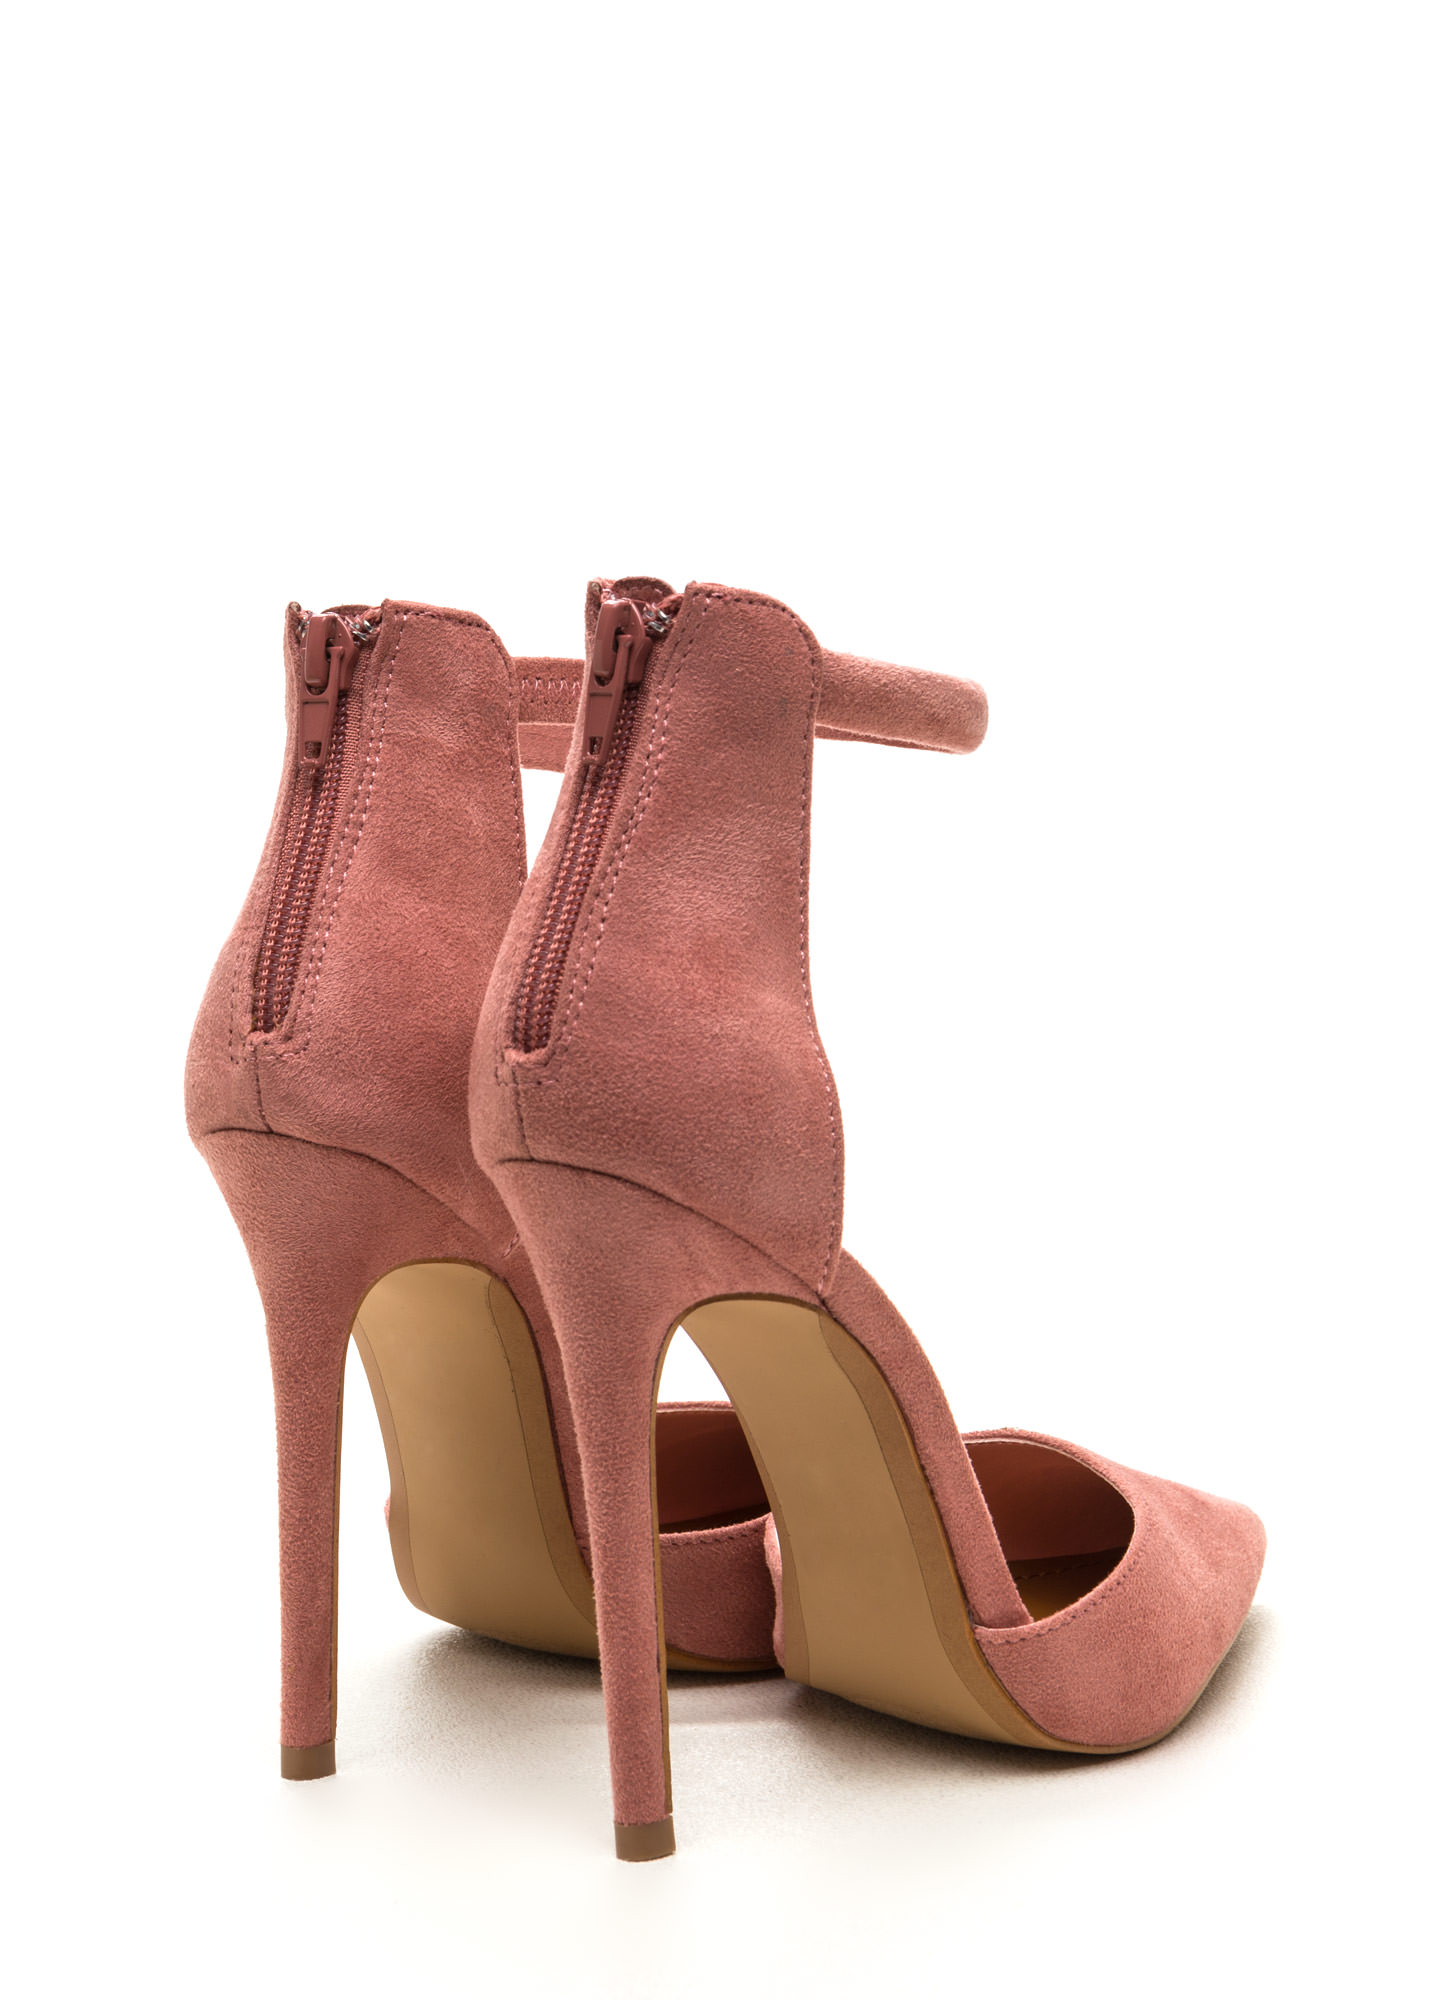 Socialite Style Faux Suede Pointy Heels BLUSH